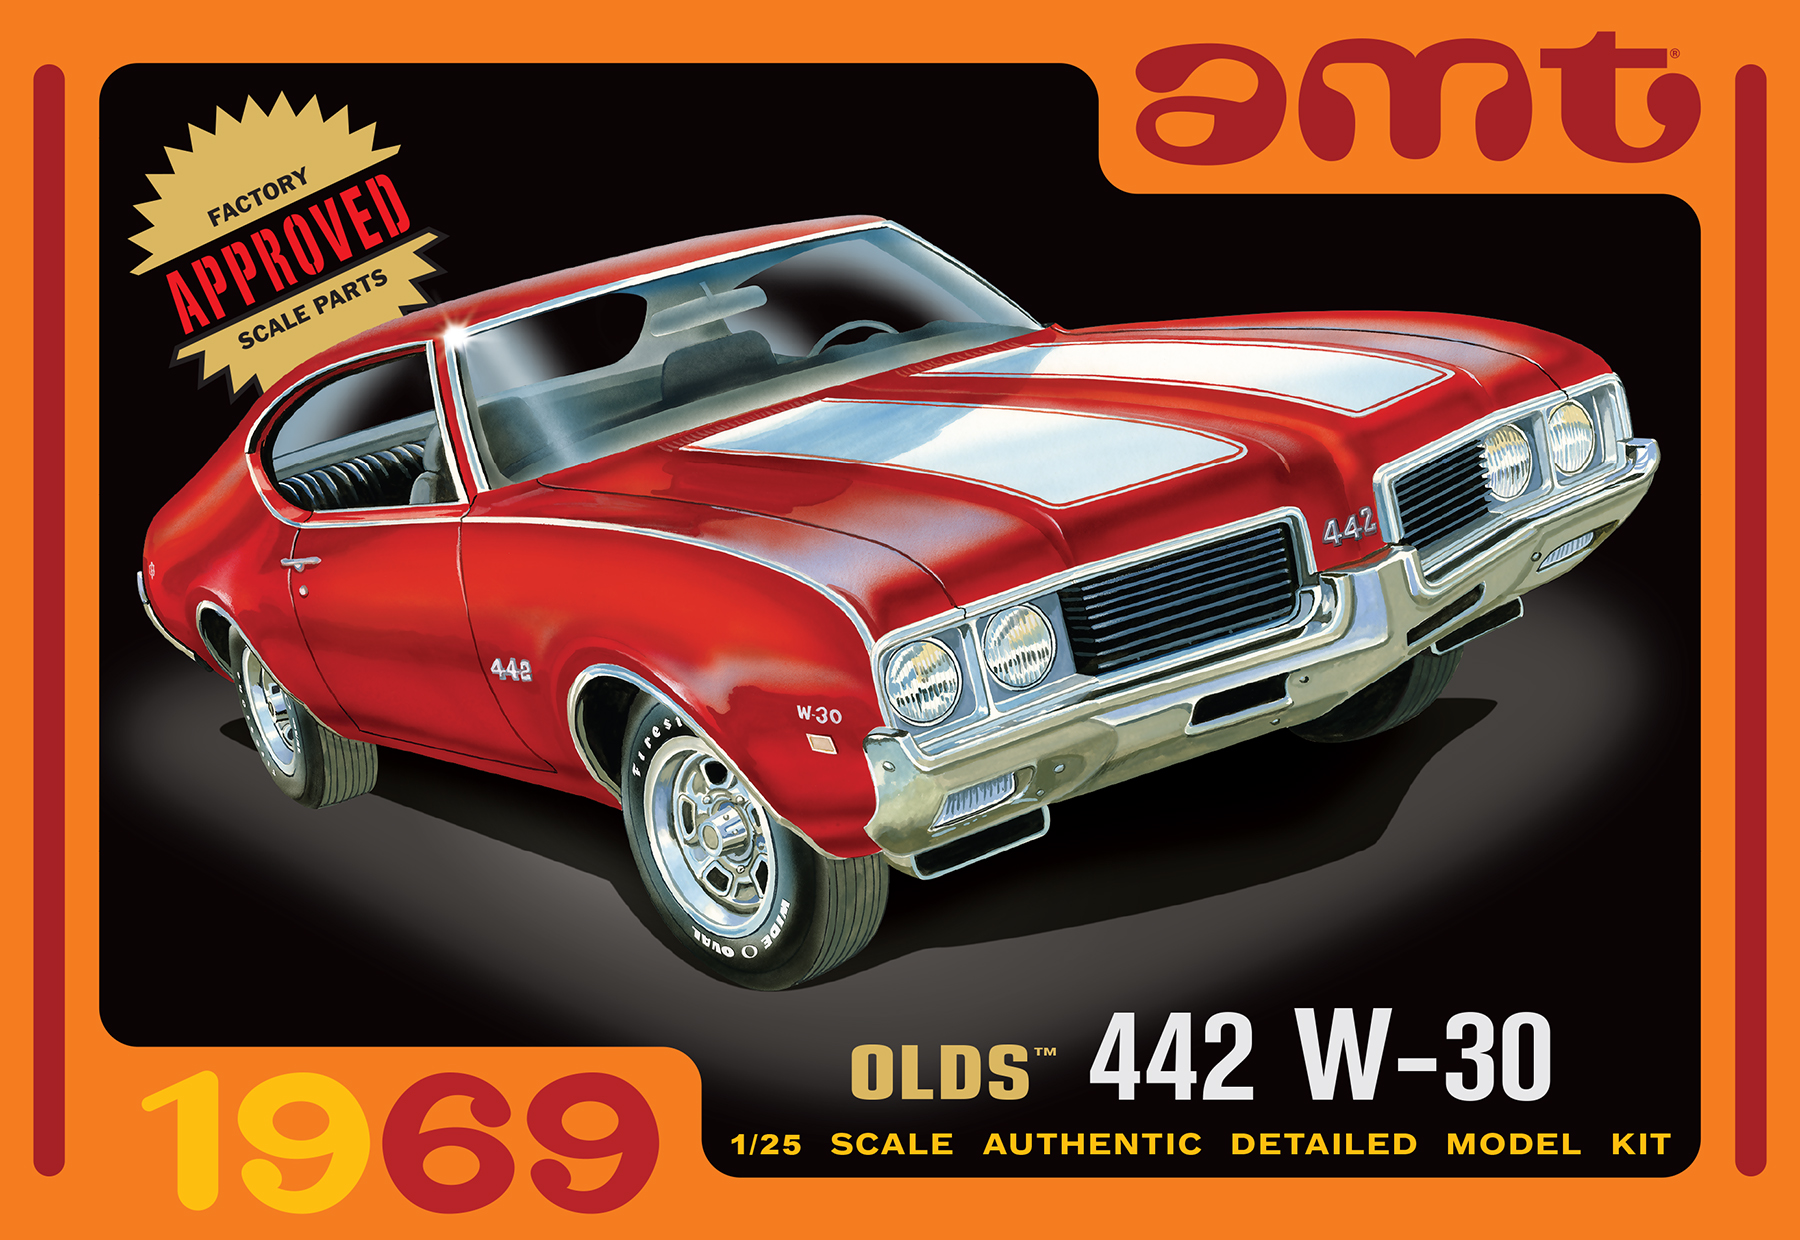 1/25 AMT 1969 Olds W-30 442 - Car Kit News & Reviews - Model Cars ...